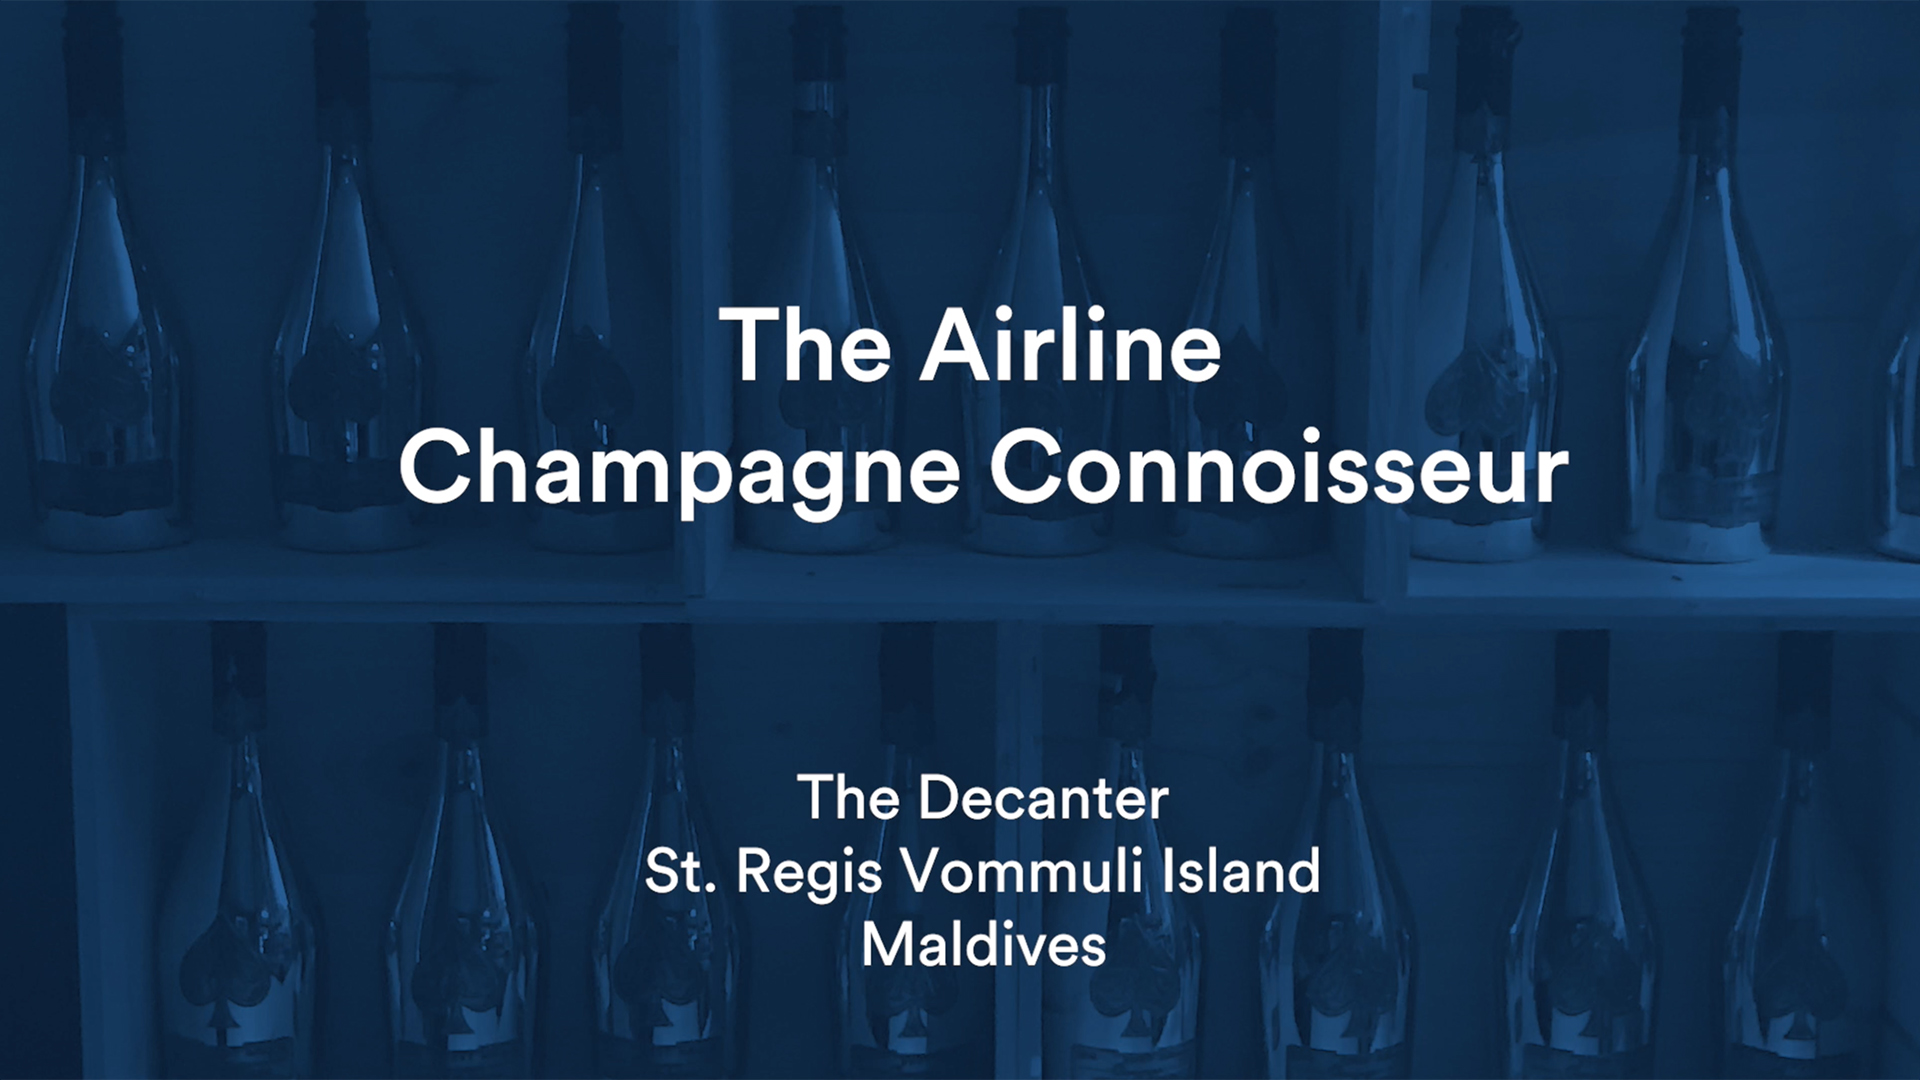 The Airline Champagne Connoisseur